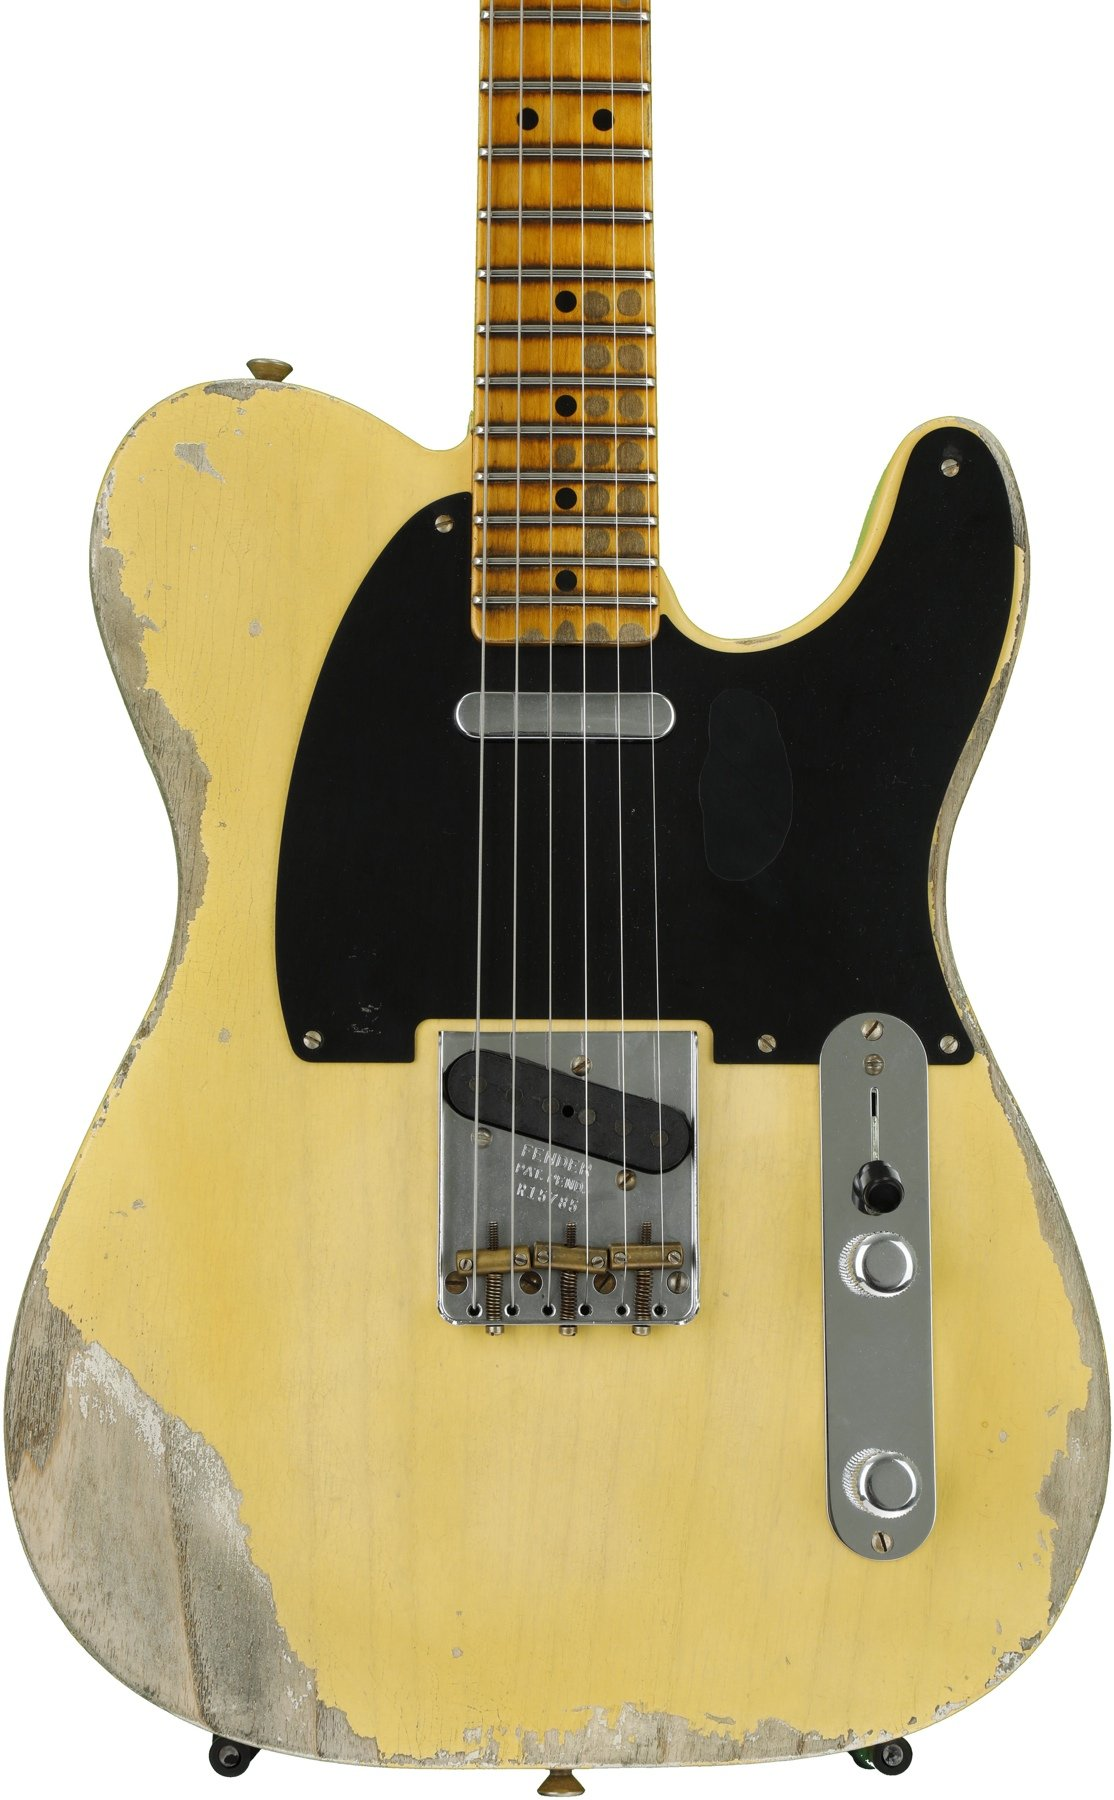 Fender Custom Shop 1951 Time Machine Heavy Relic Telecaster Faded Pickup Wiring Stack Nocaster Blonde Image 1